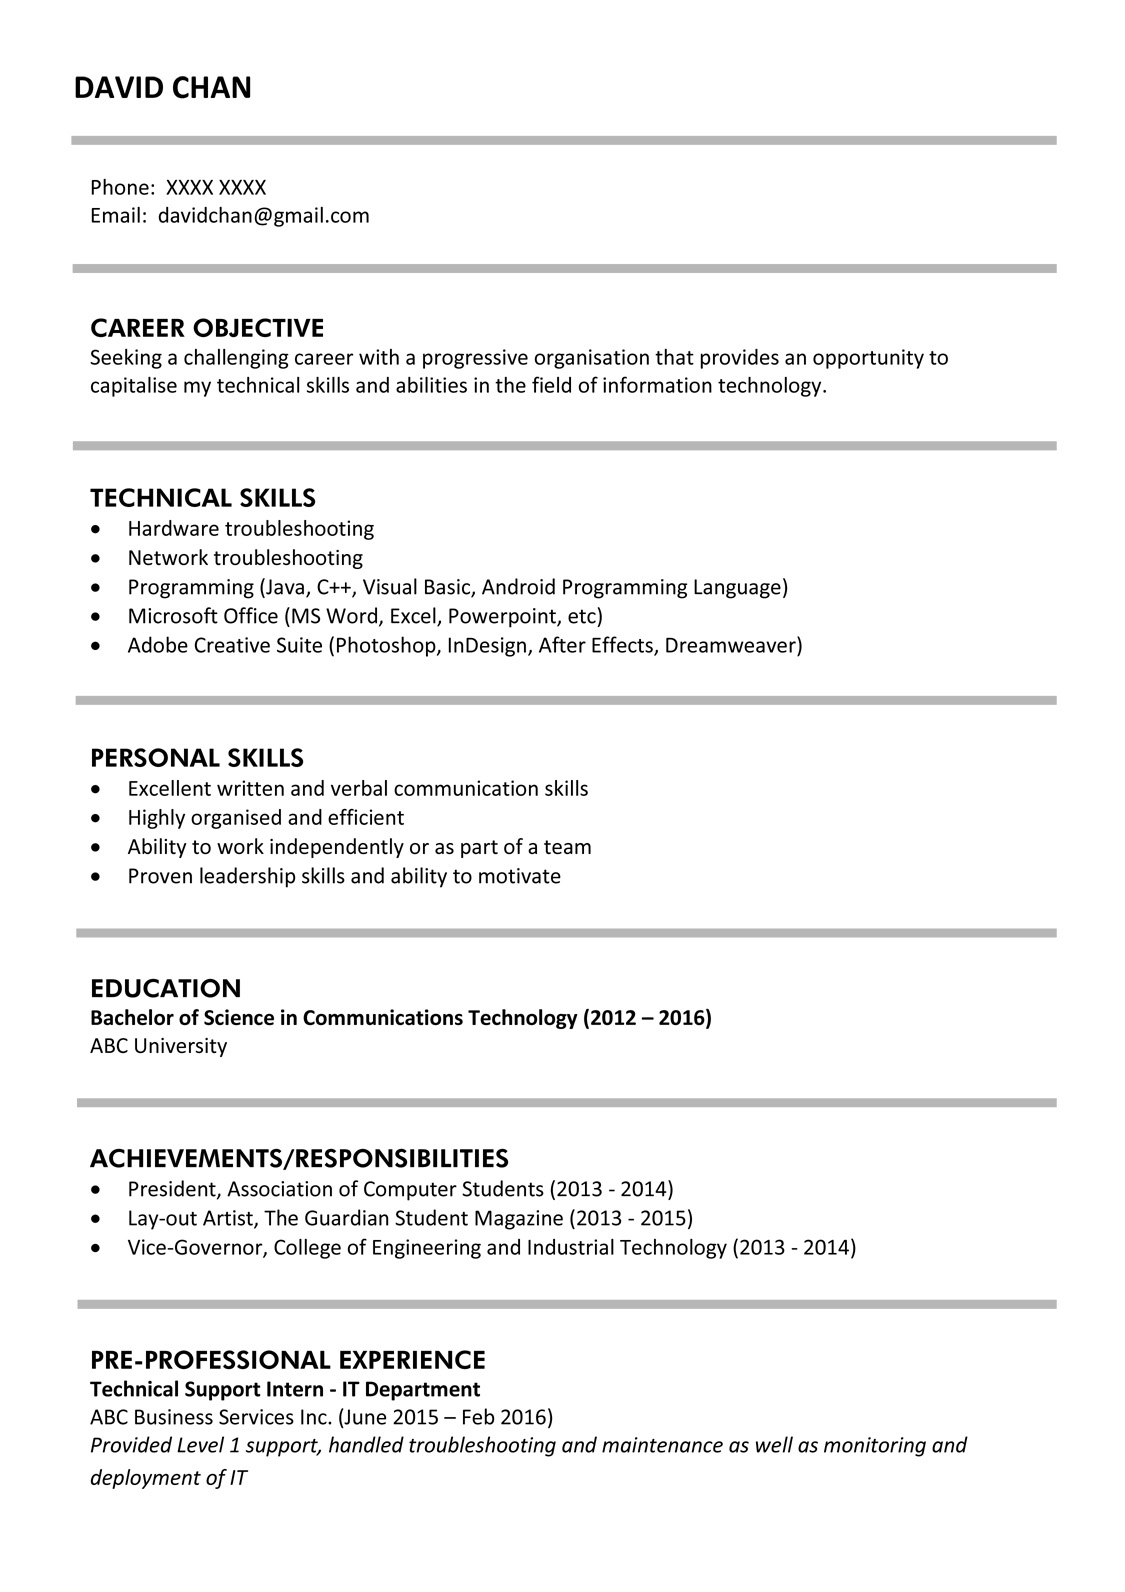 sample resume format 1 - It Sample Resume Format